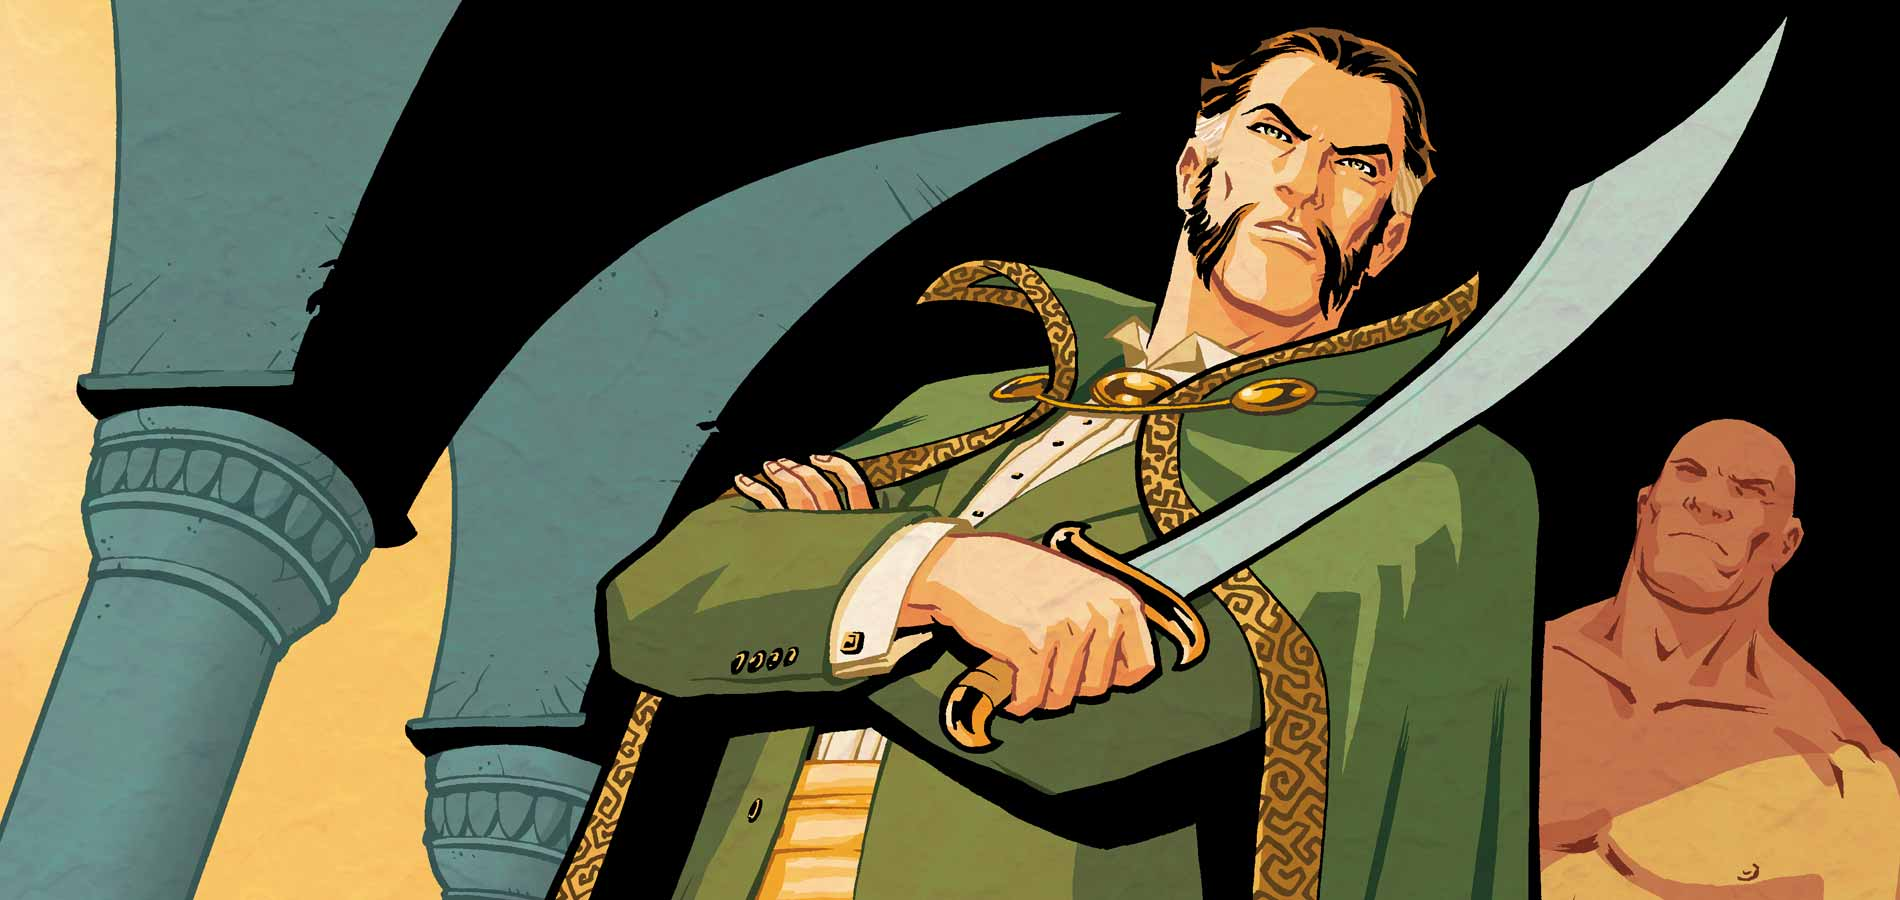 The Origin of Ra's Al Ghul #1. Written by Scott Beatty. Art by Cliff Chiang. September 15 2010. DC Comics. Ra's Al Ghul.